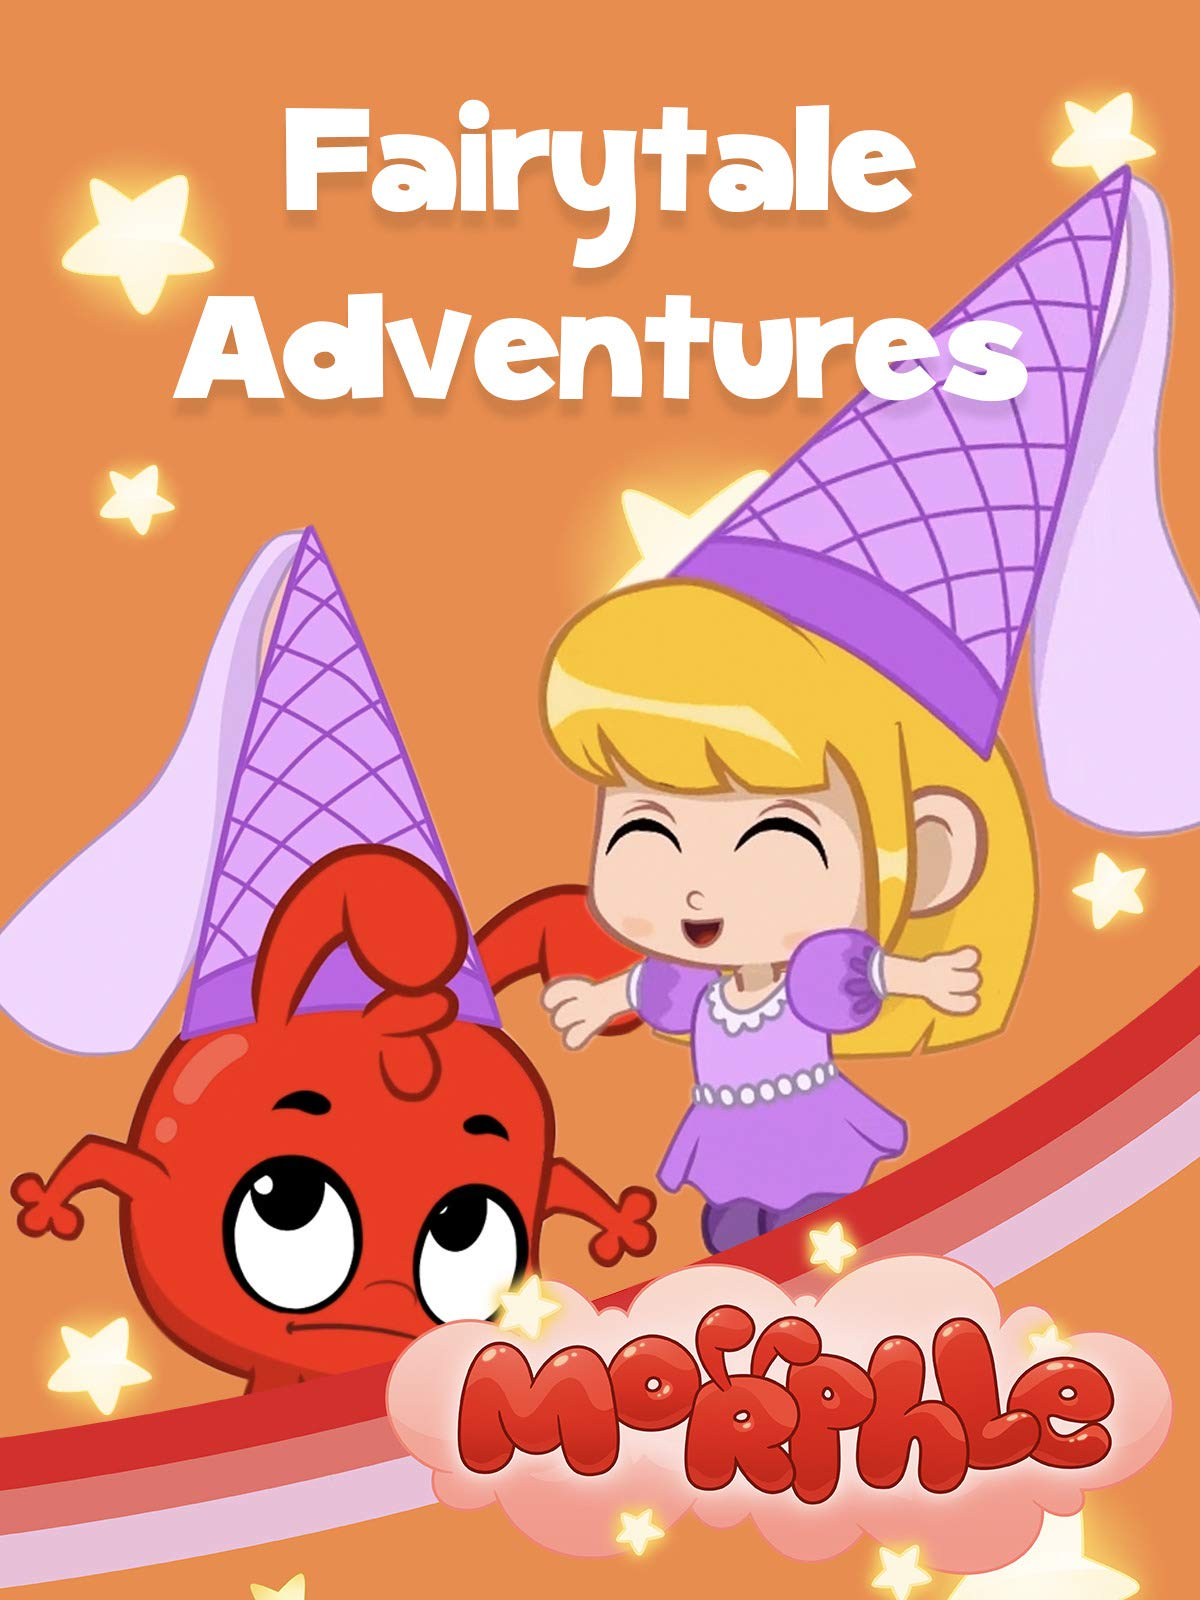 Morphle - Fairytale Adventures & More Cartoons for Kids